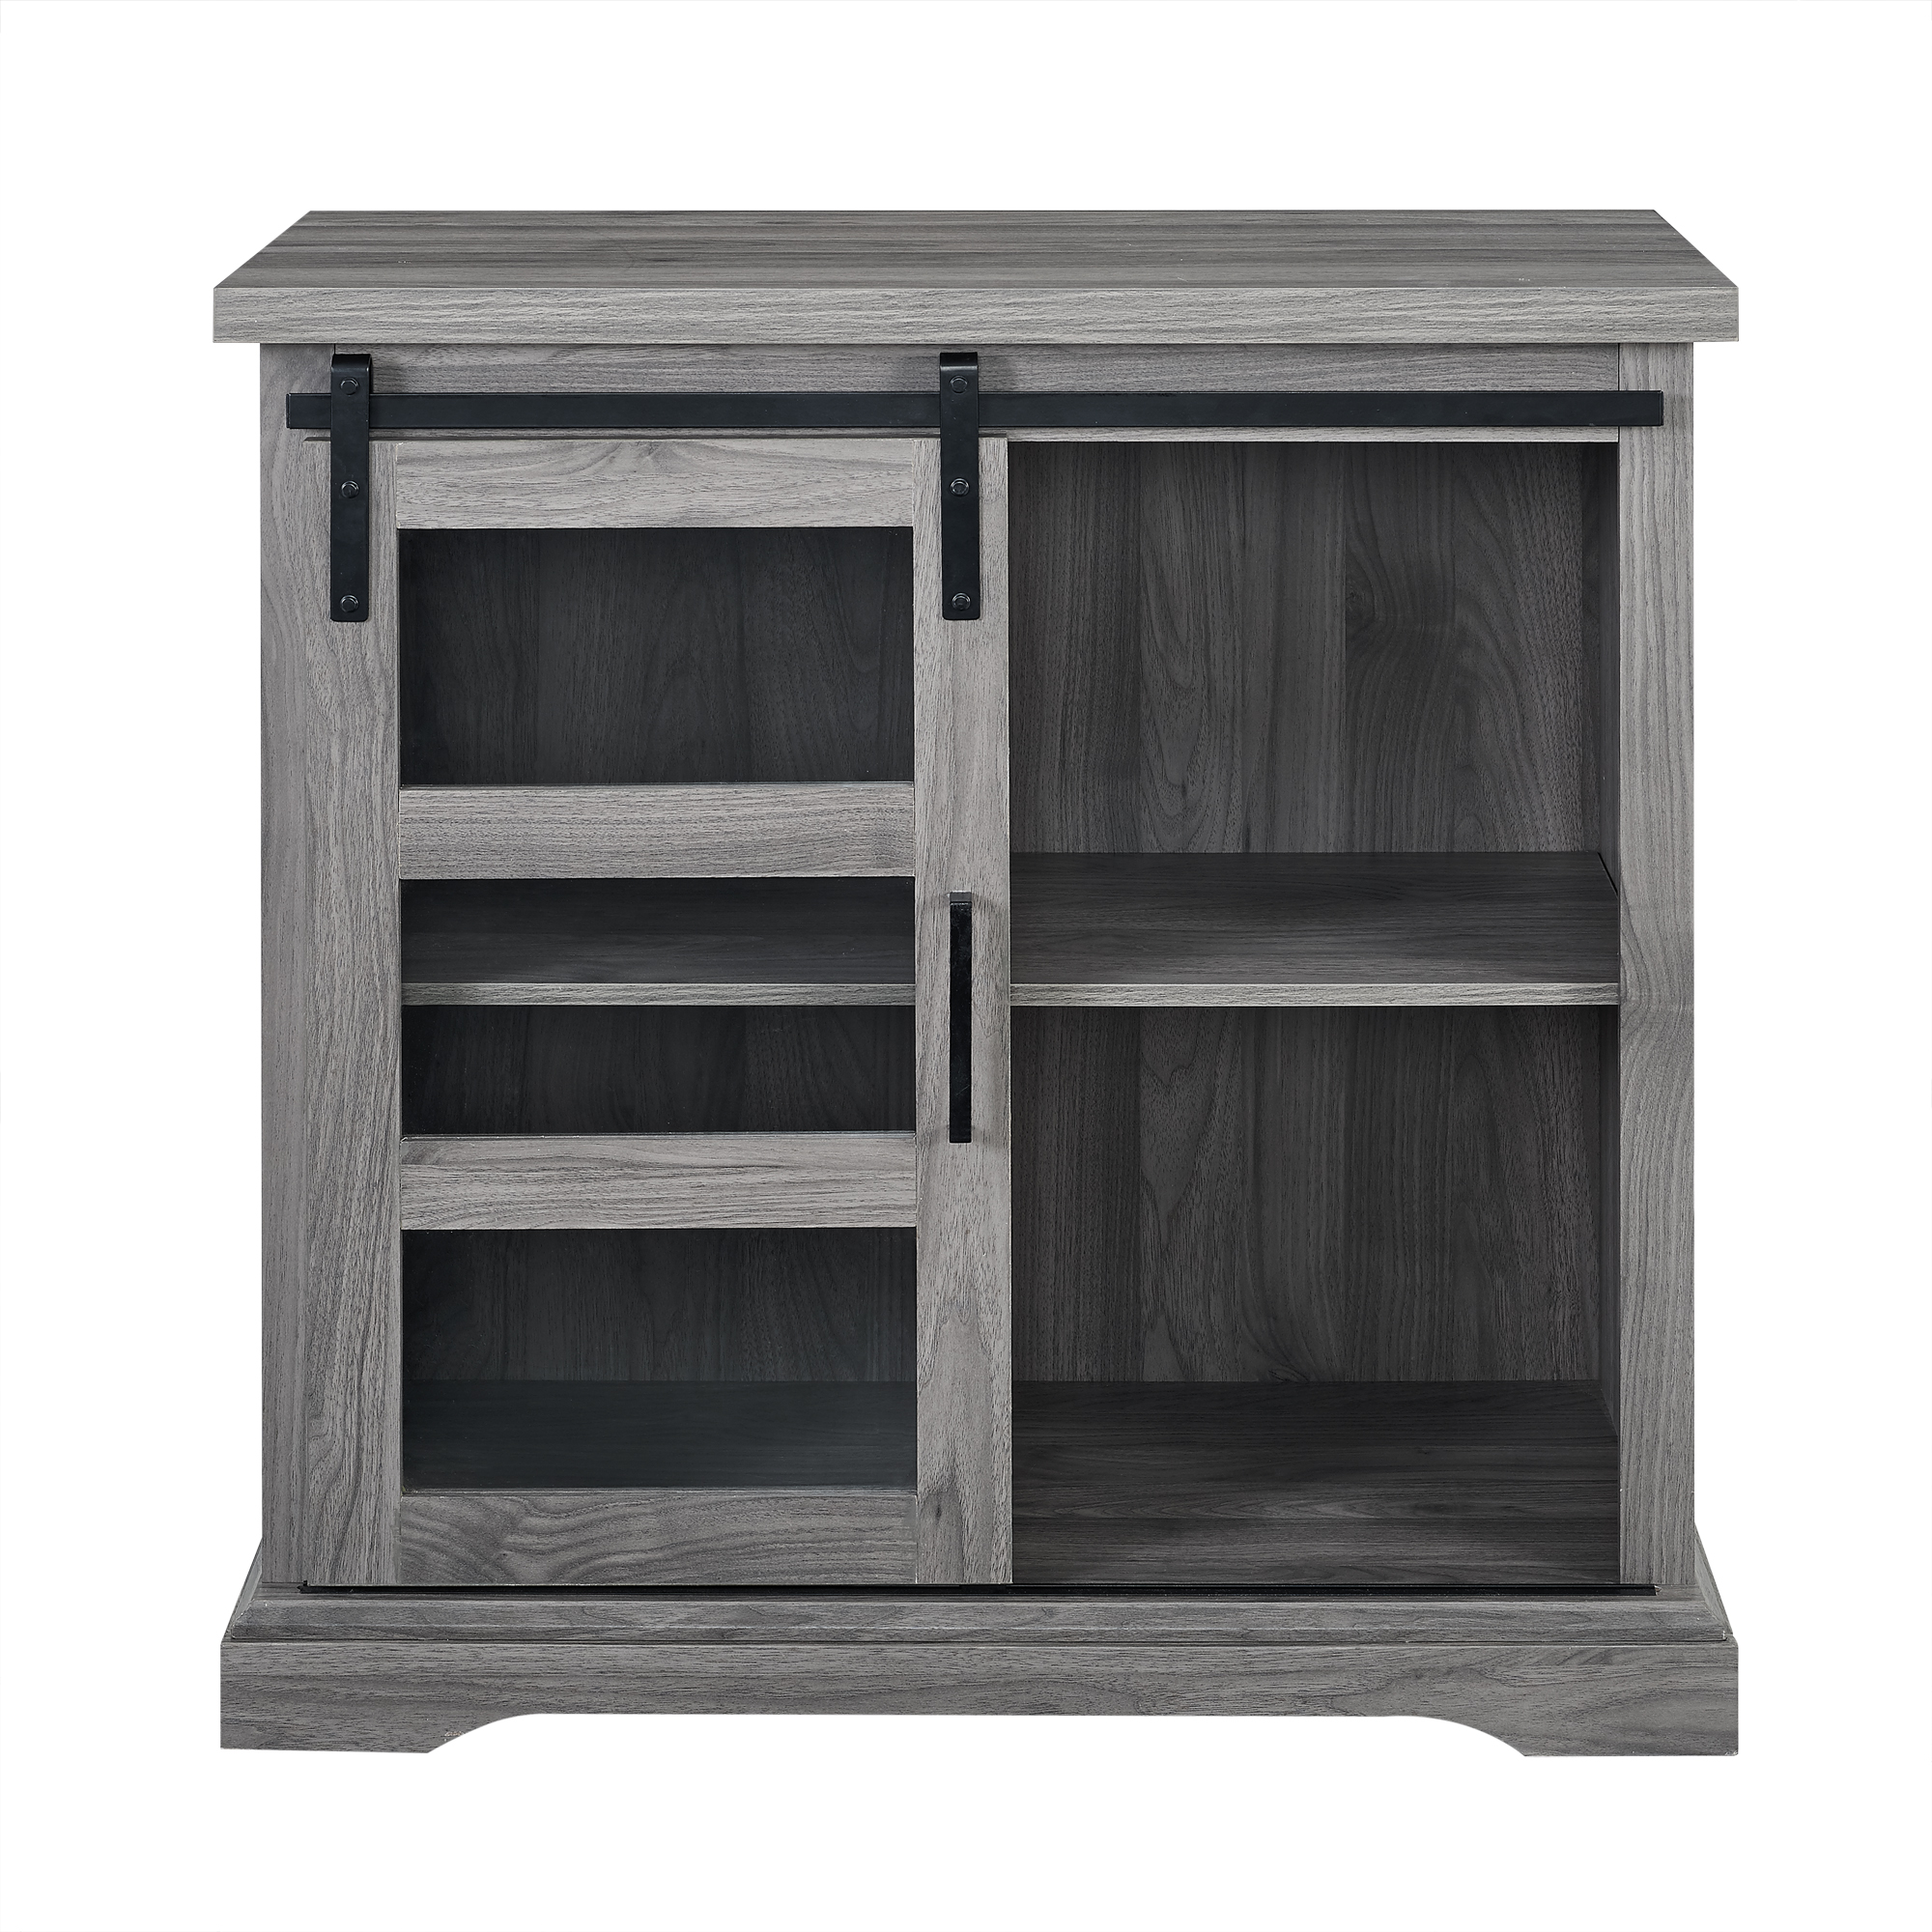 "Manor Park 32"" Sliding Glass Door Accent Console - Slate Grey"